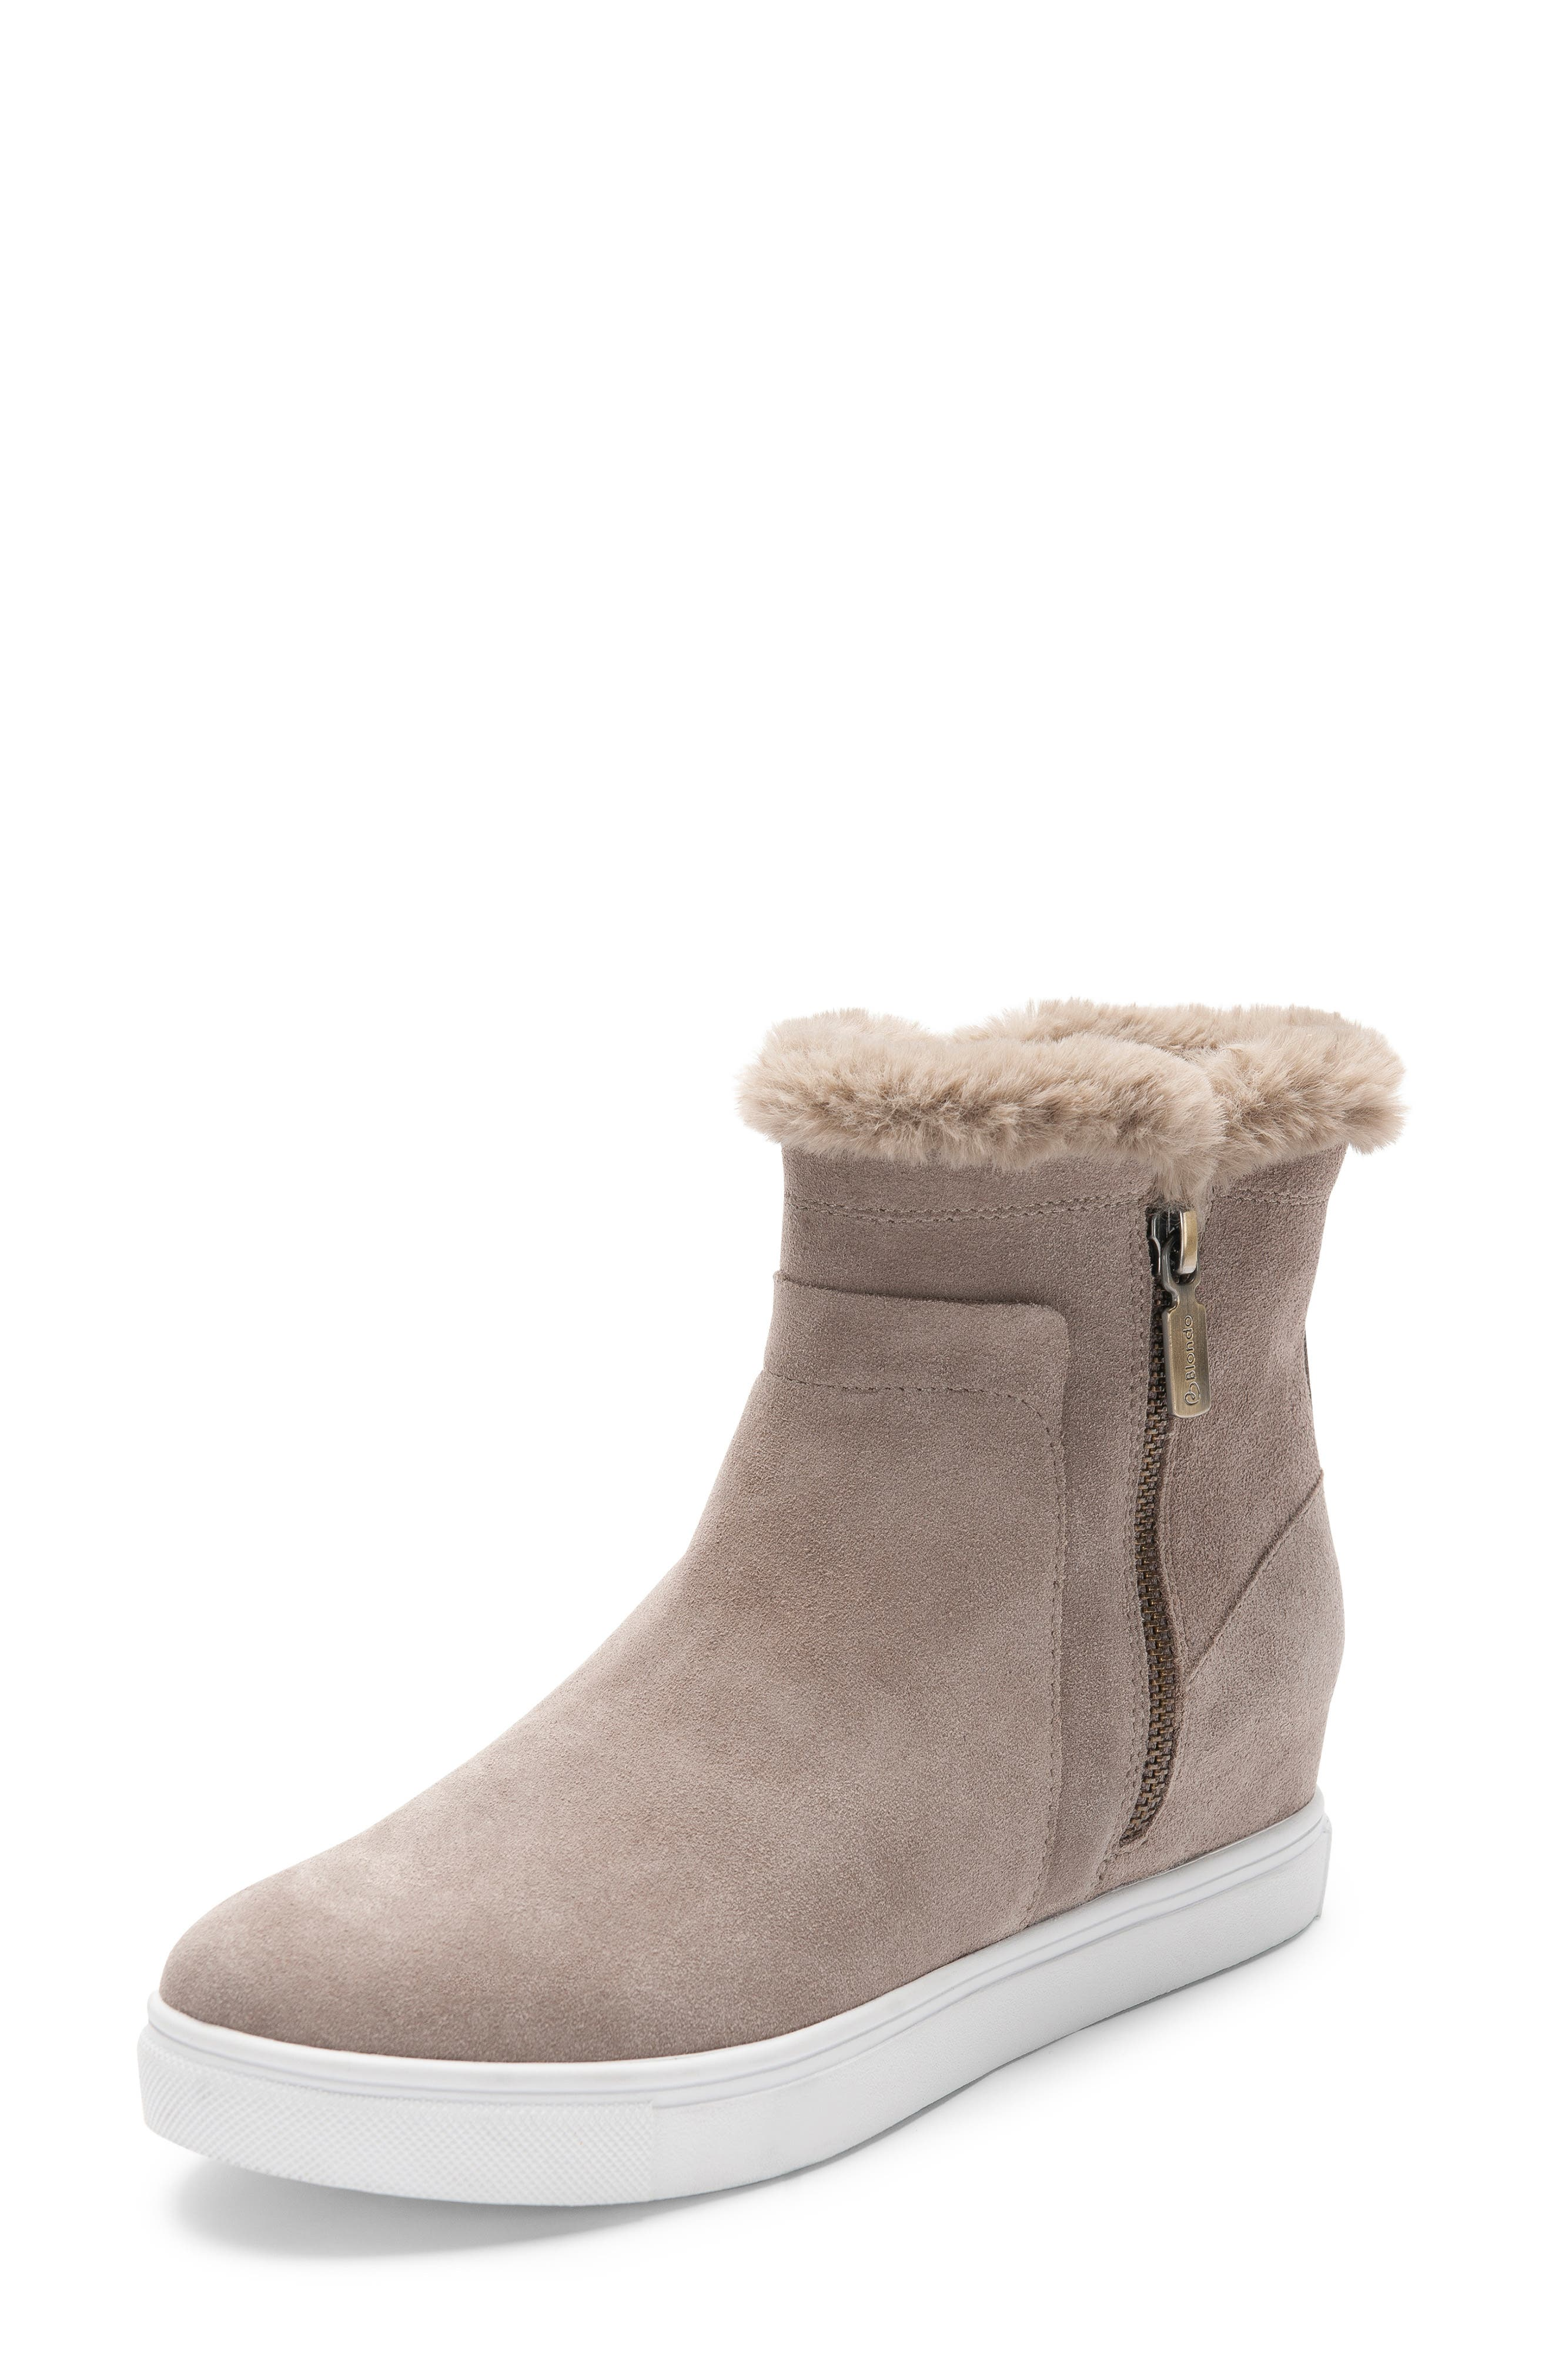 Image of Blondo Glade Suede Faux Fur Lined Sneaker